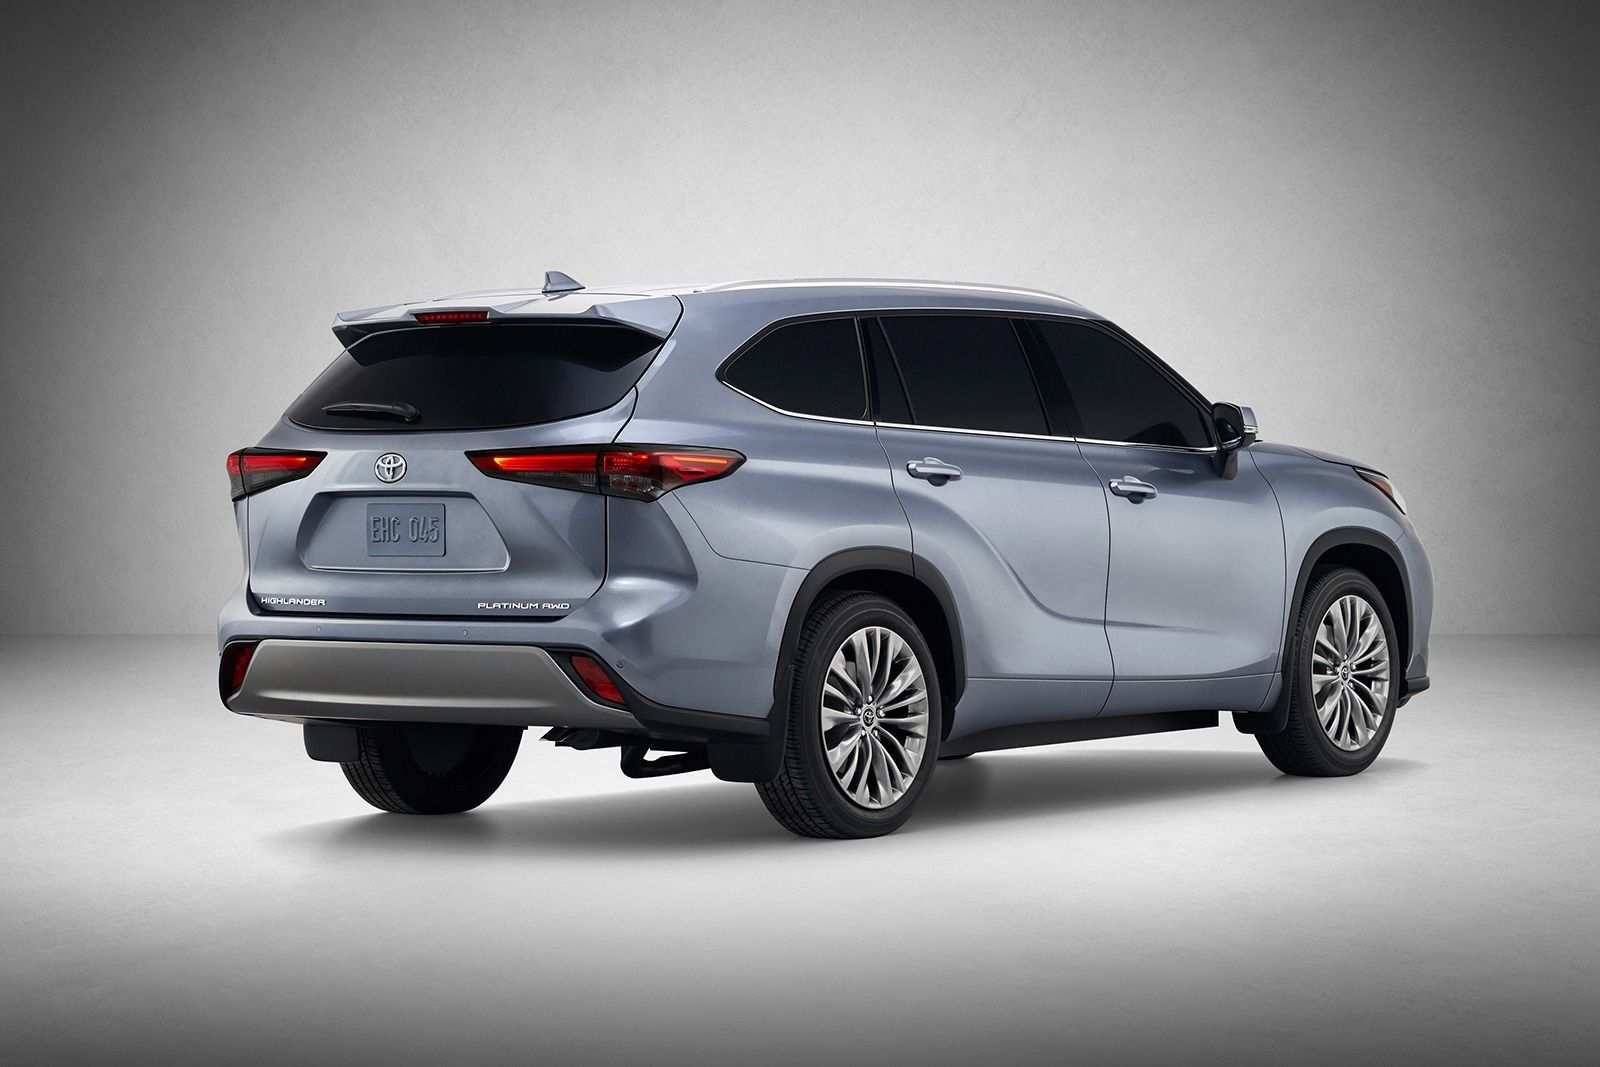 80 Best Review 2020 Toyota Highlander Release Date Price and Review by 2020 Toyota Highlander Release Date